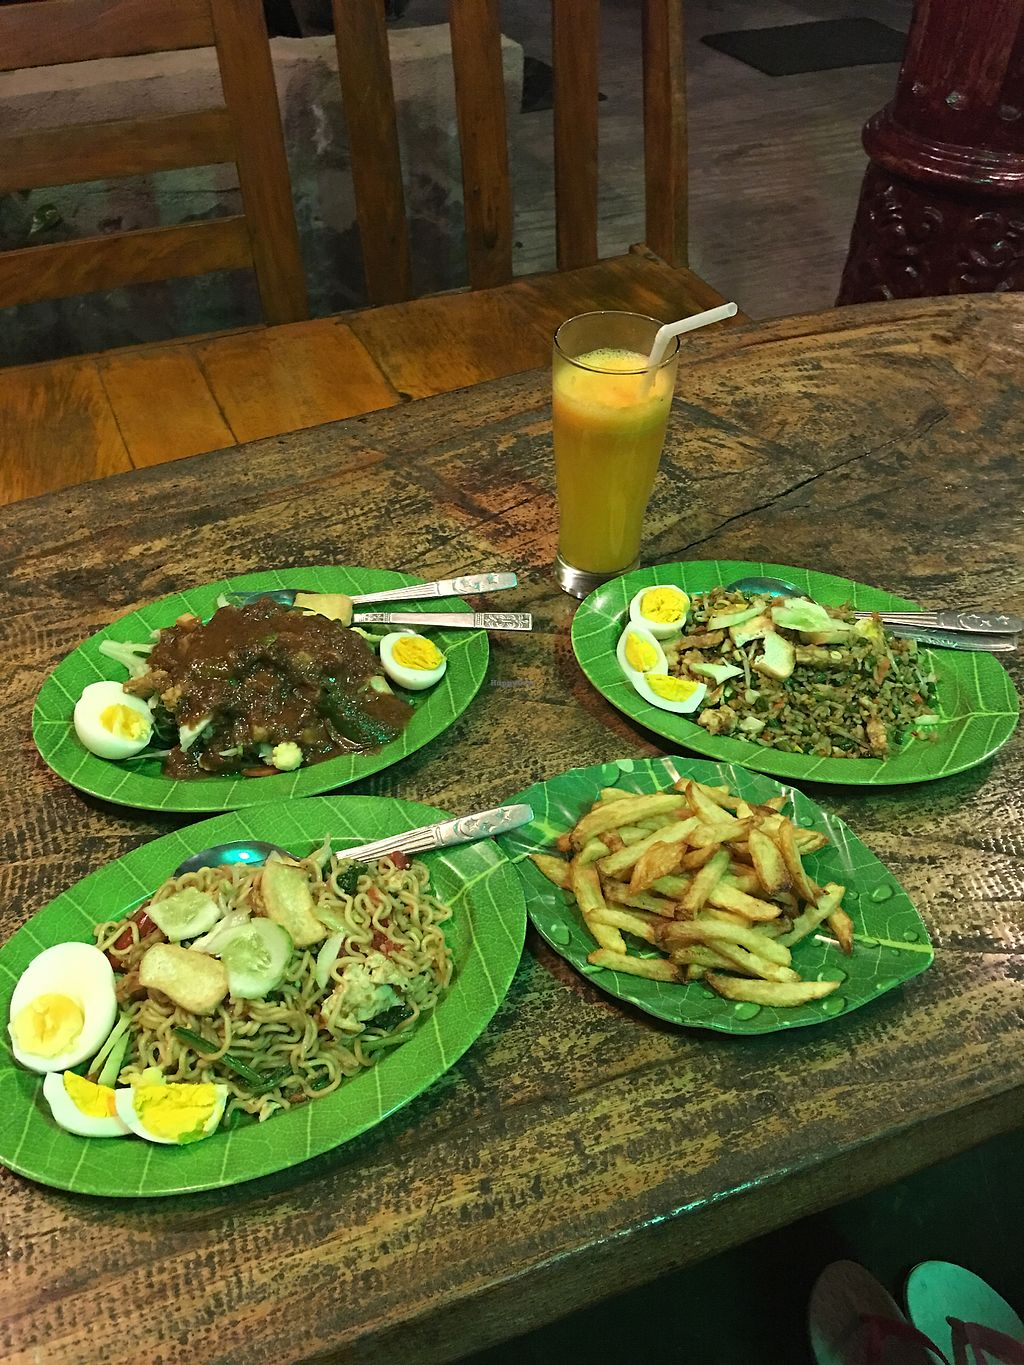 "Photo of Juwita Cafe  by <a href=""/members/profile/Vegeson"">Vegeson</a> <br/>Rice, noodle, fries  <br/> April 13, 2018  - <a href='/contact/abuse/image/37137/384926'>Report</a>"